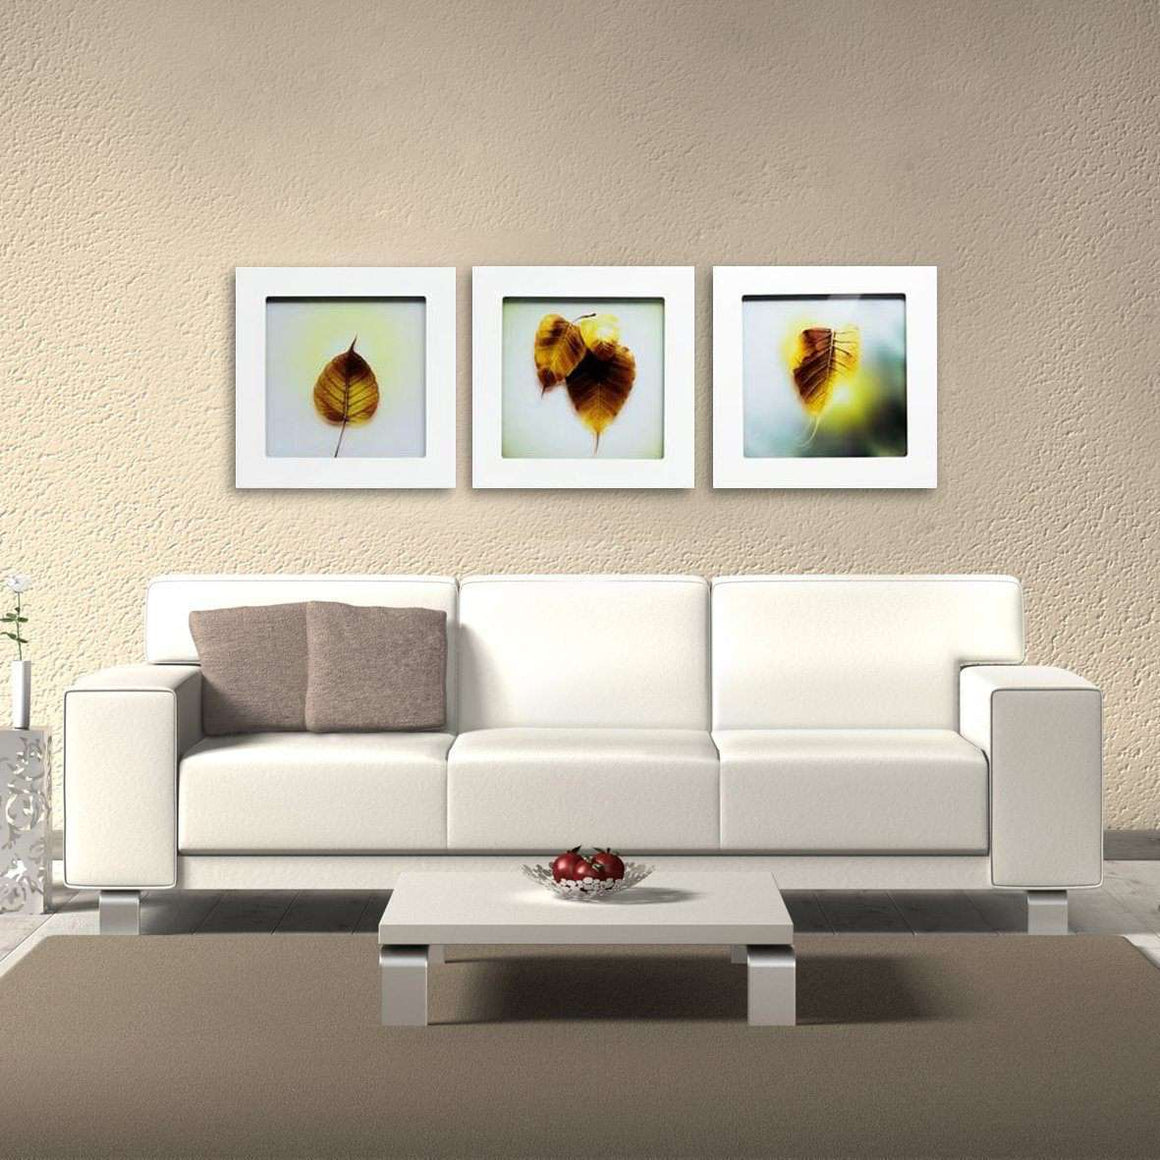 Autumn - Shadowbox Frame Print on Glass - Set of 3